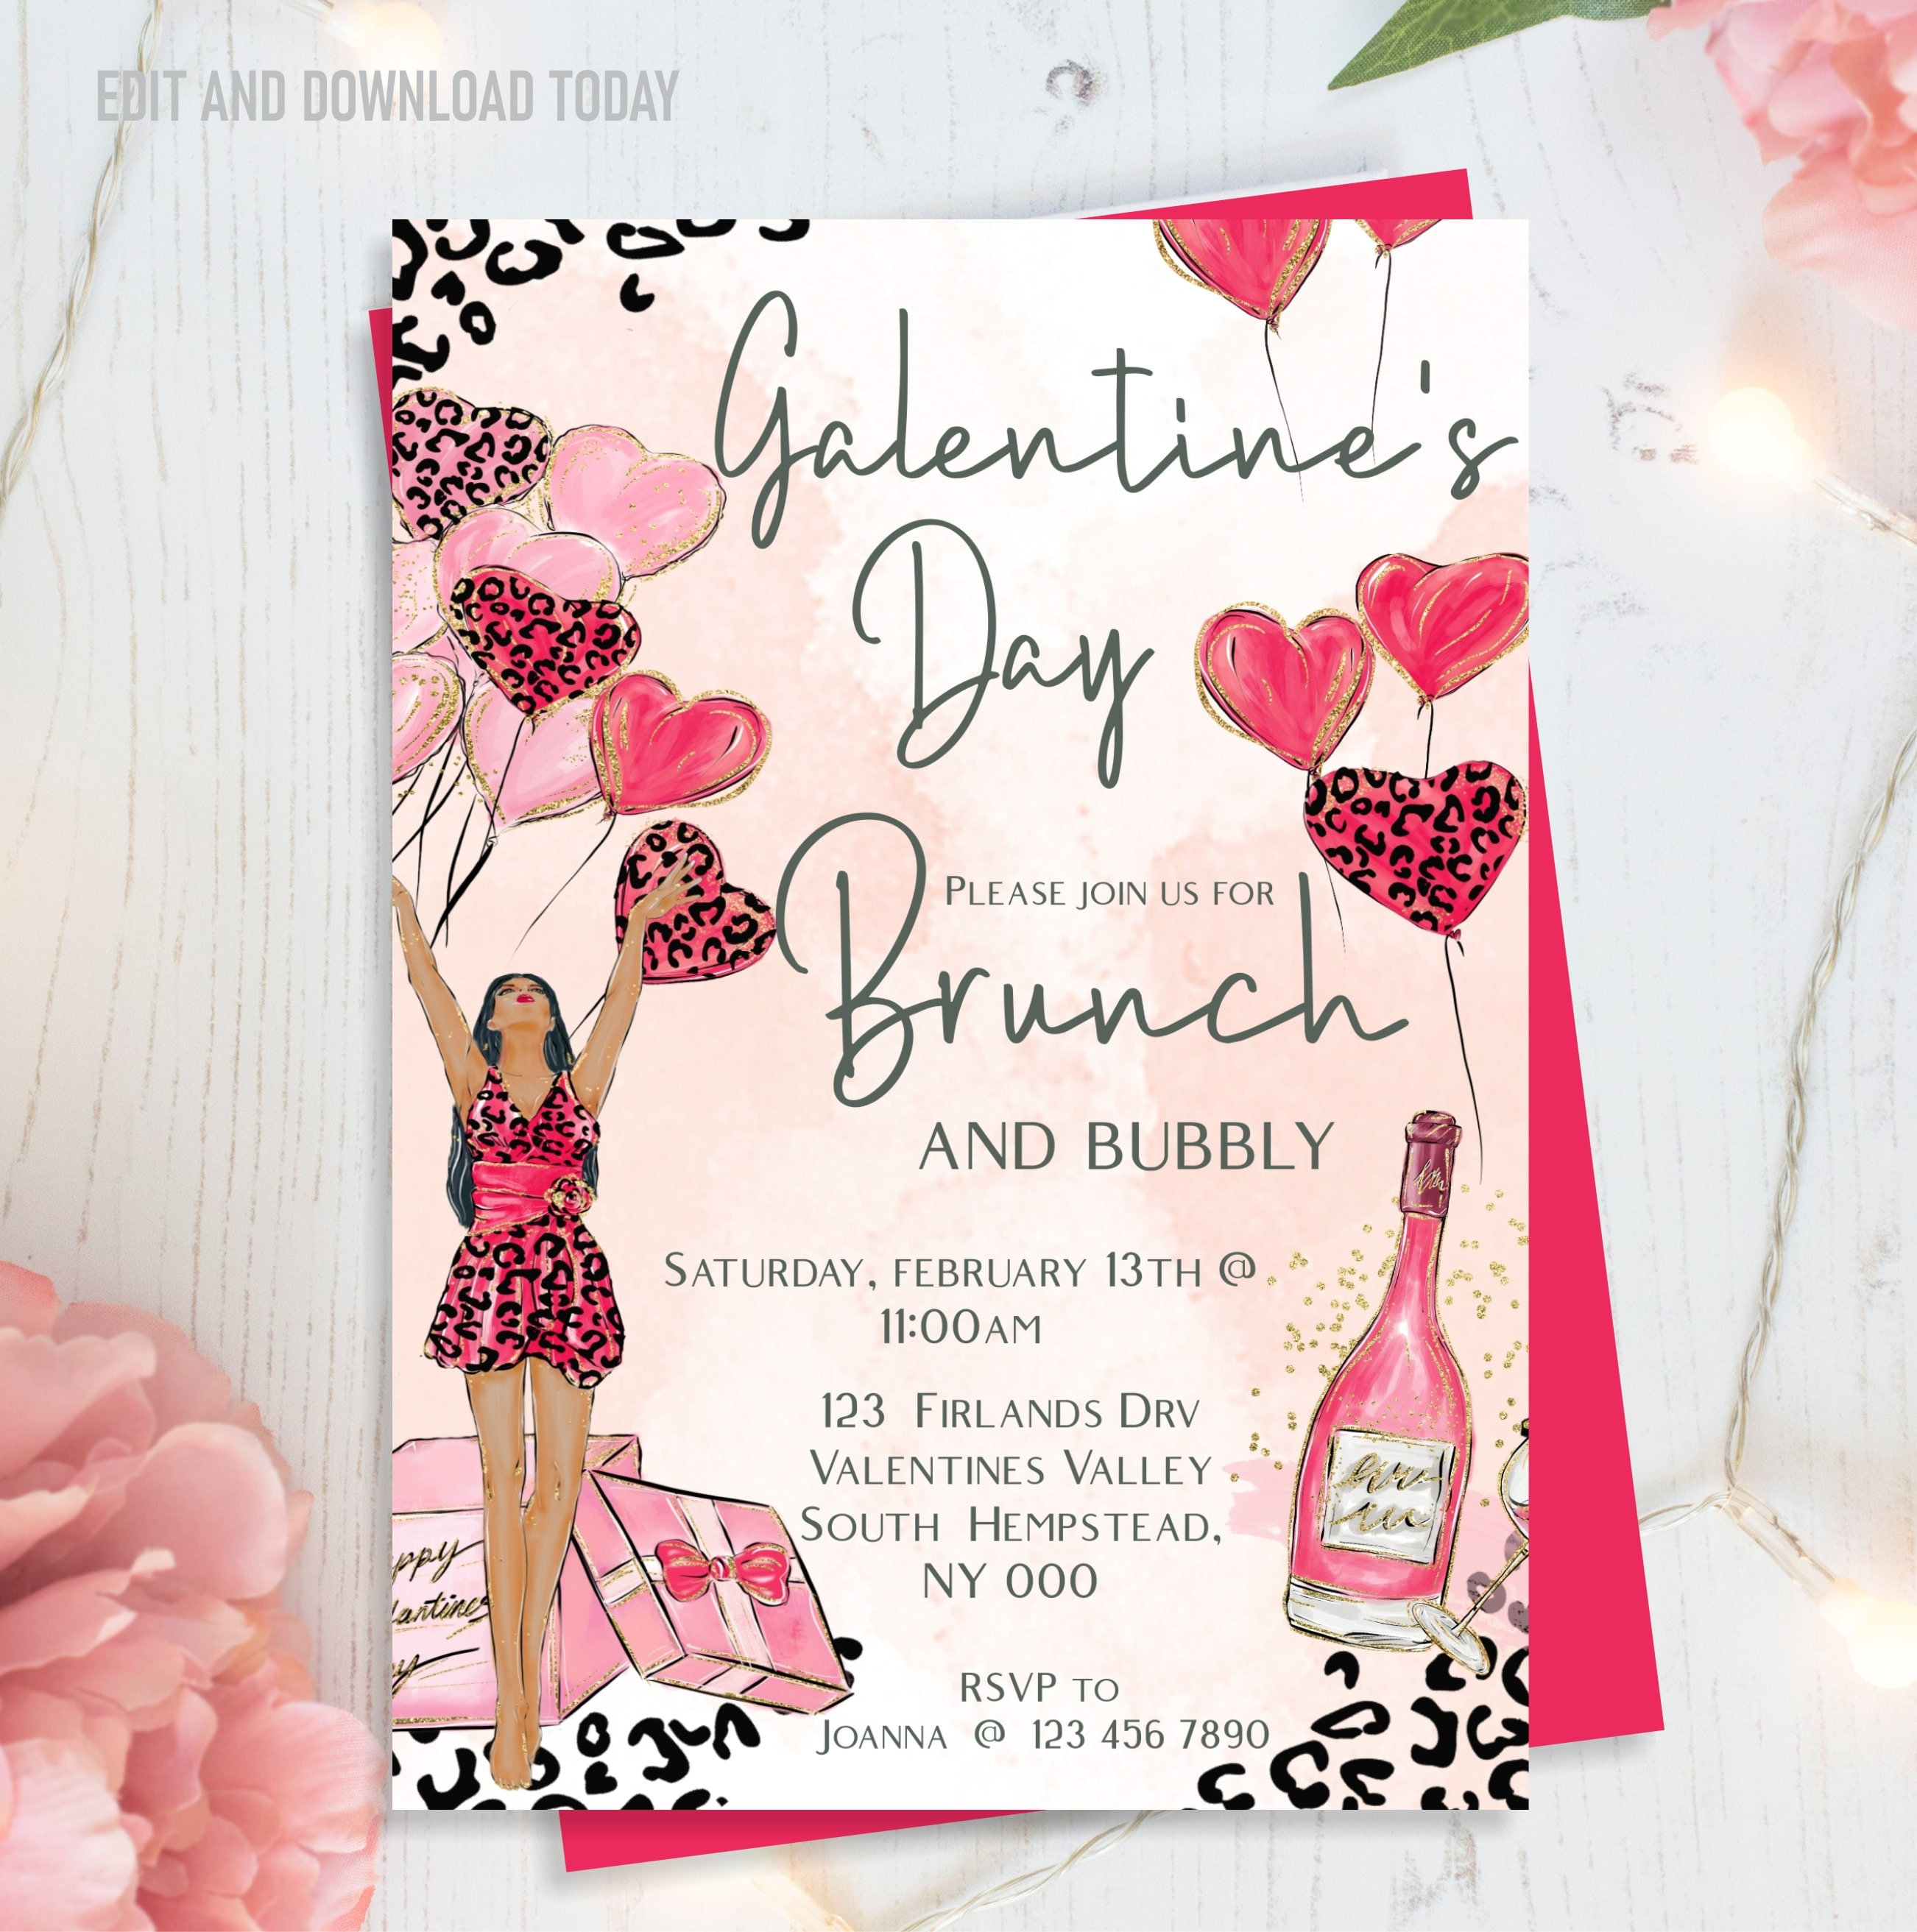 Galentine S Brunch Invitation Galentine S Day Brunch And Bubbly Animal Print Editable Instant Download